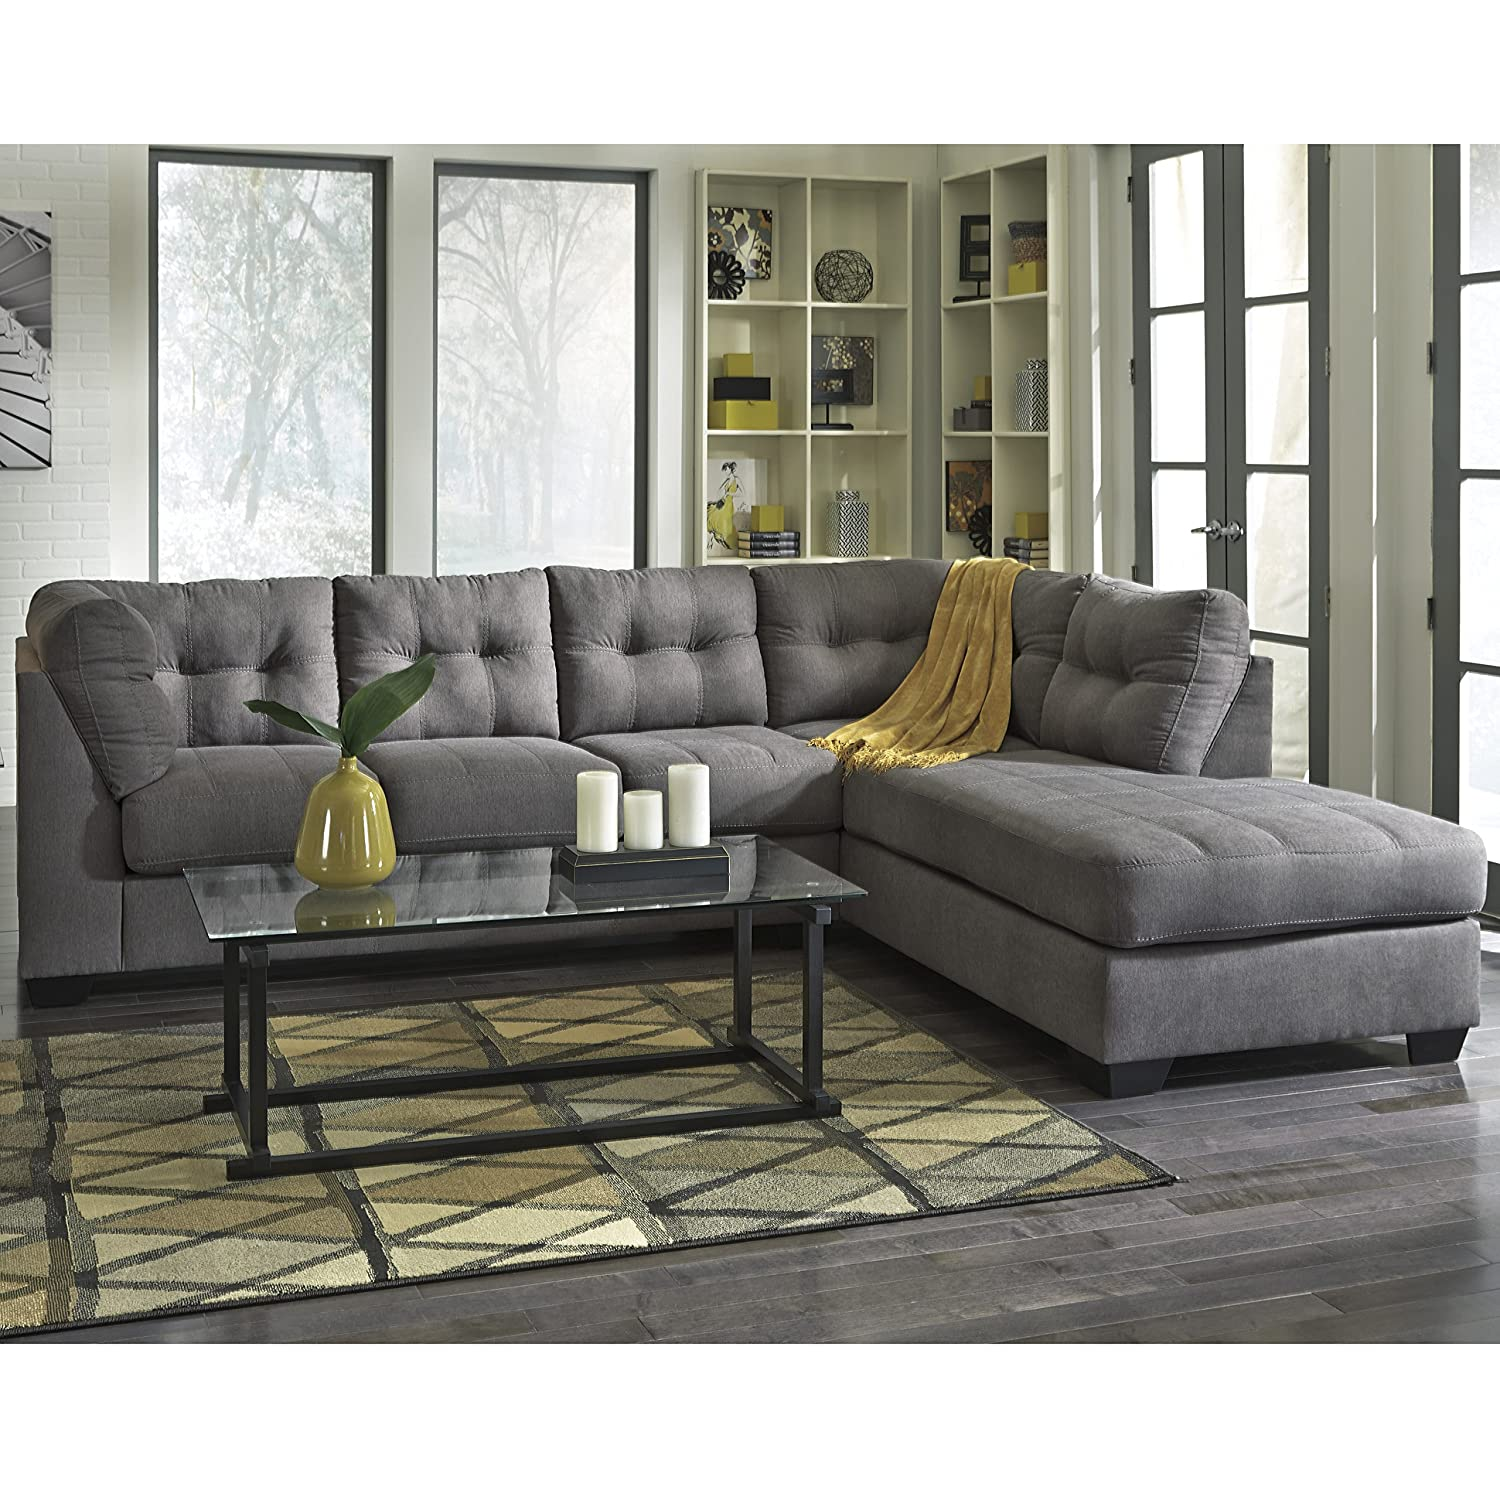 furniture sectional right benchcraft reviews fabric maier made is couch piece gray in by chaise modular sofa with